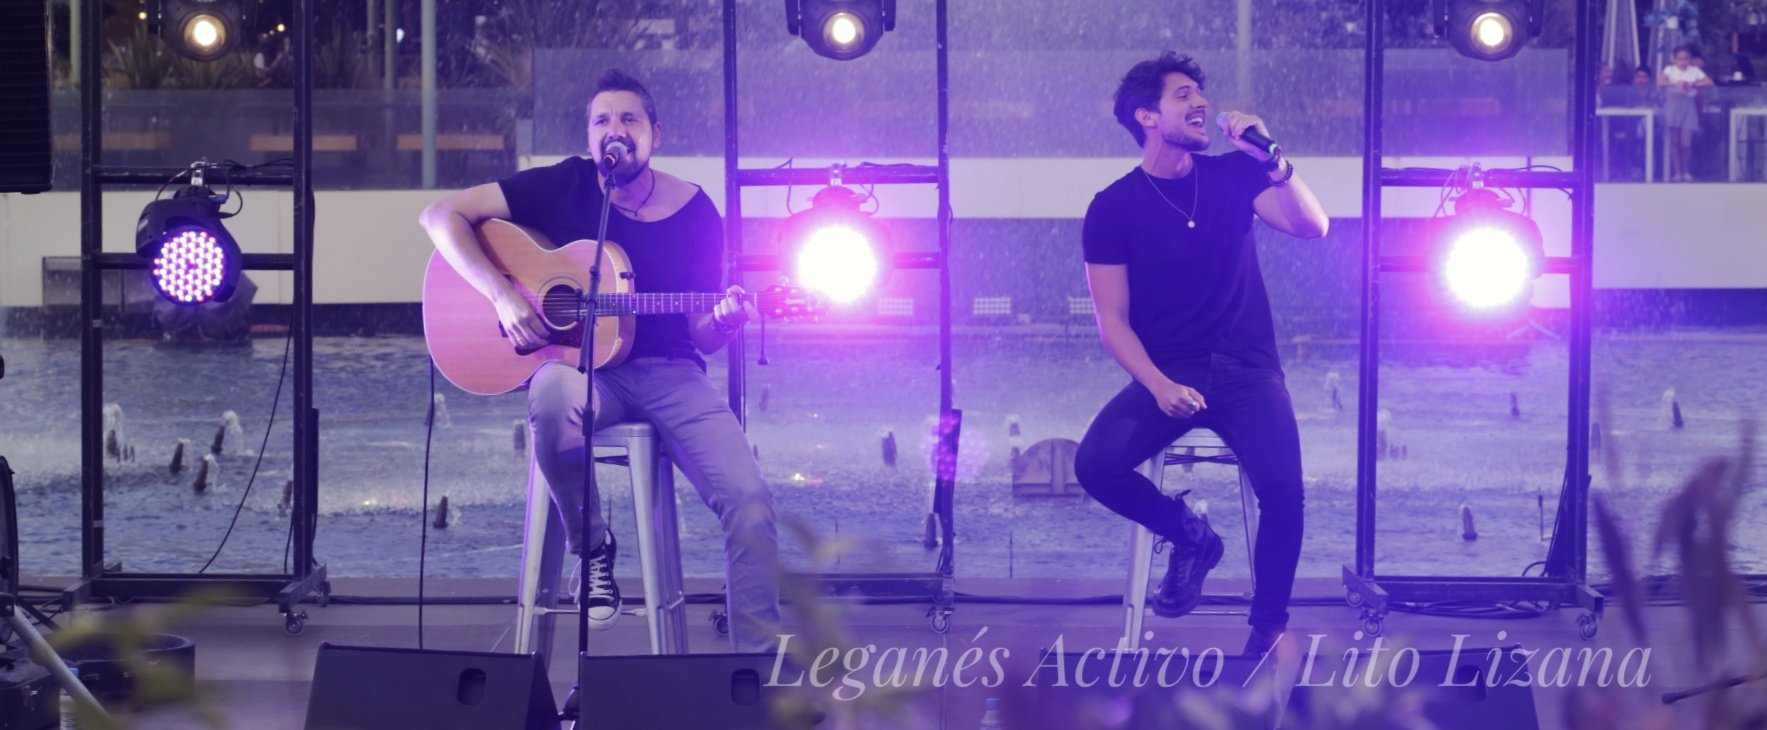 acustico de carlos right en leganes